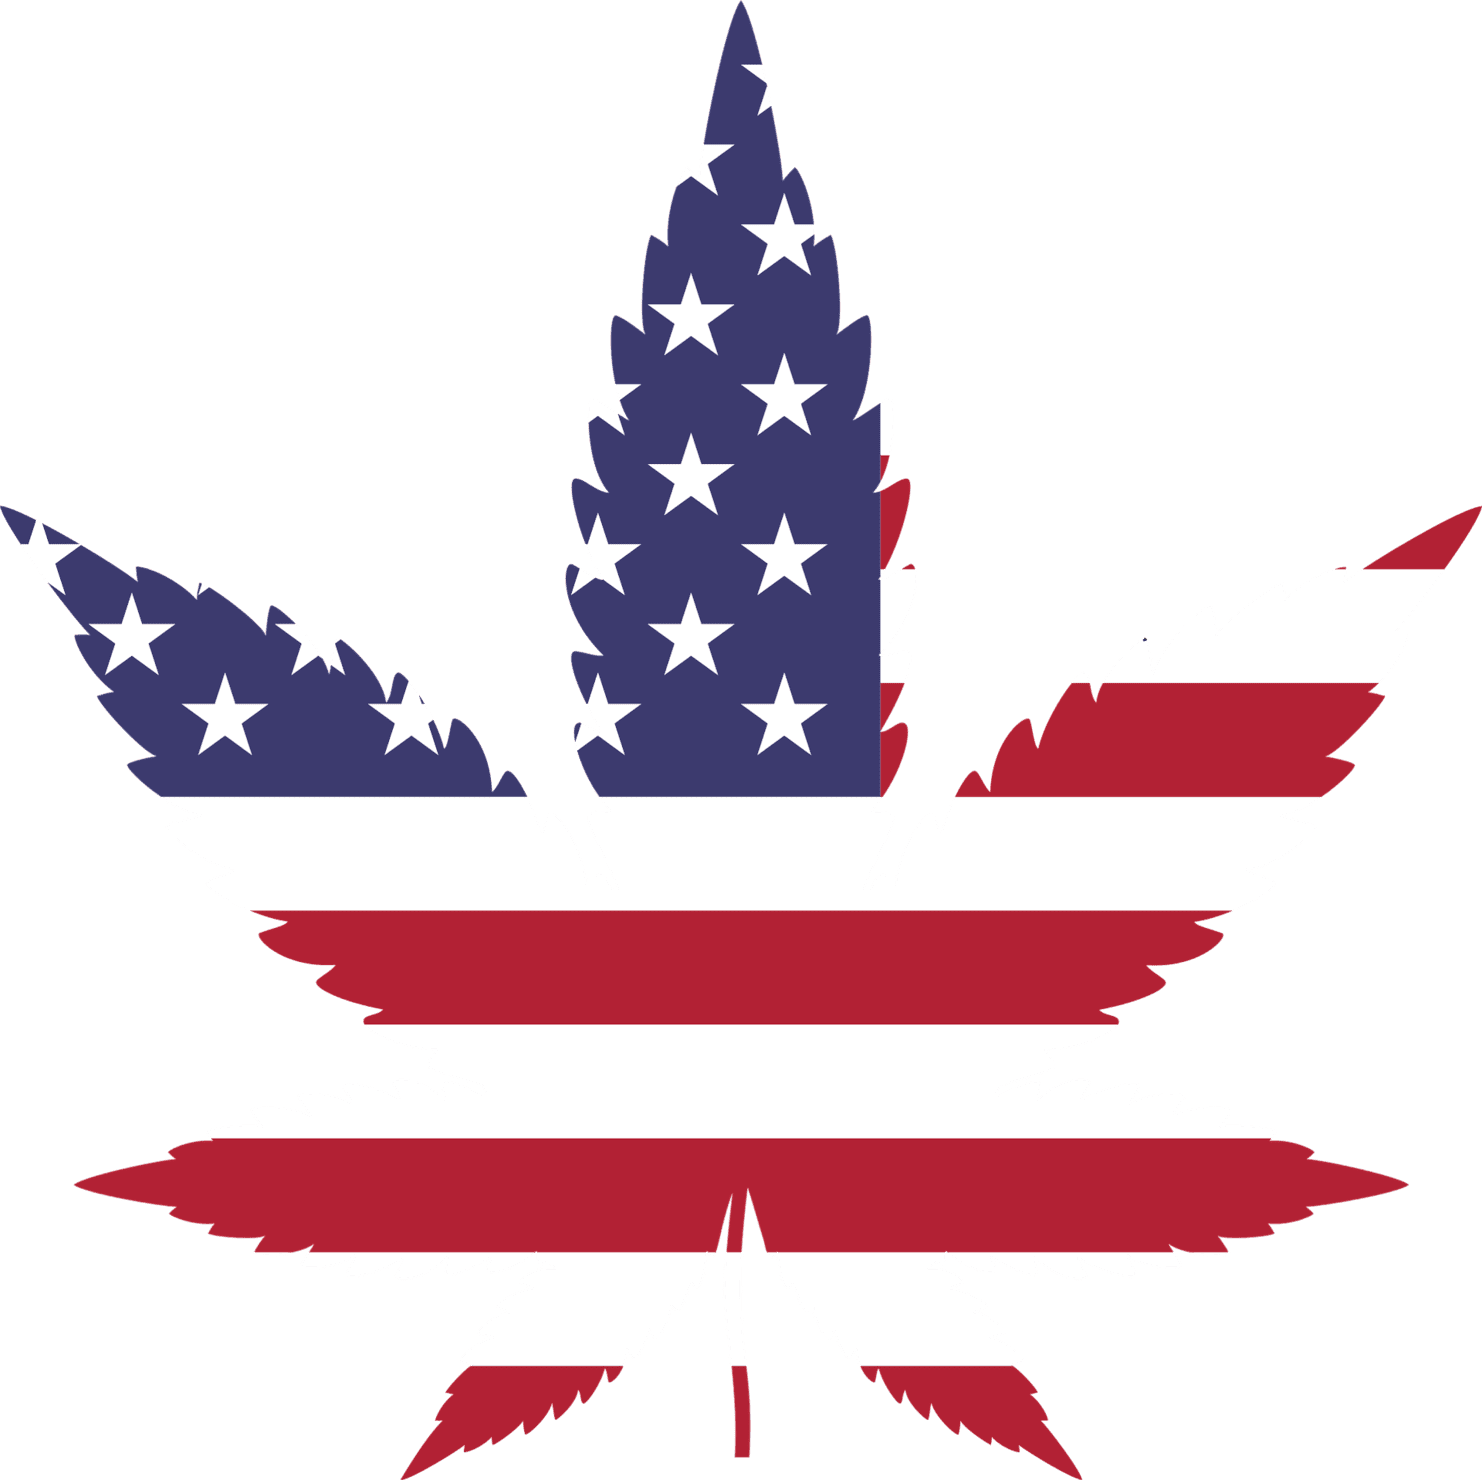 10 States that may legalize marijuana in 2020